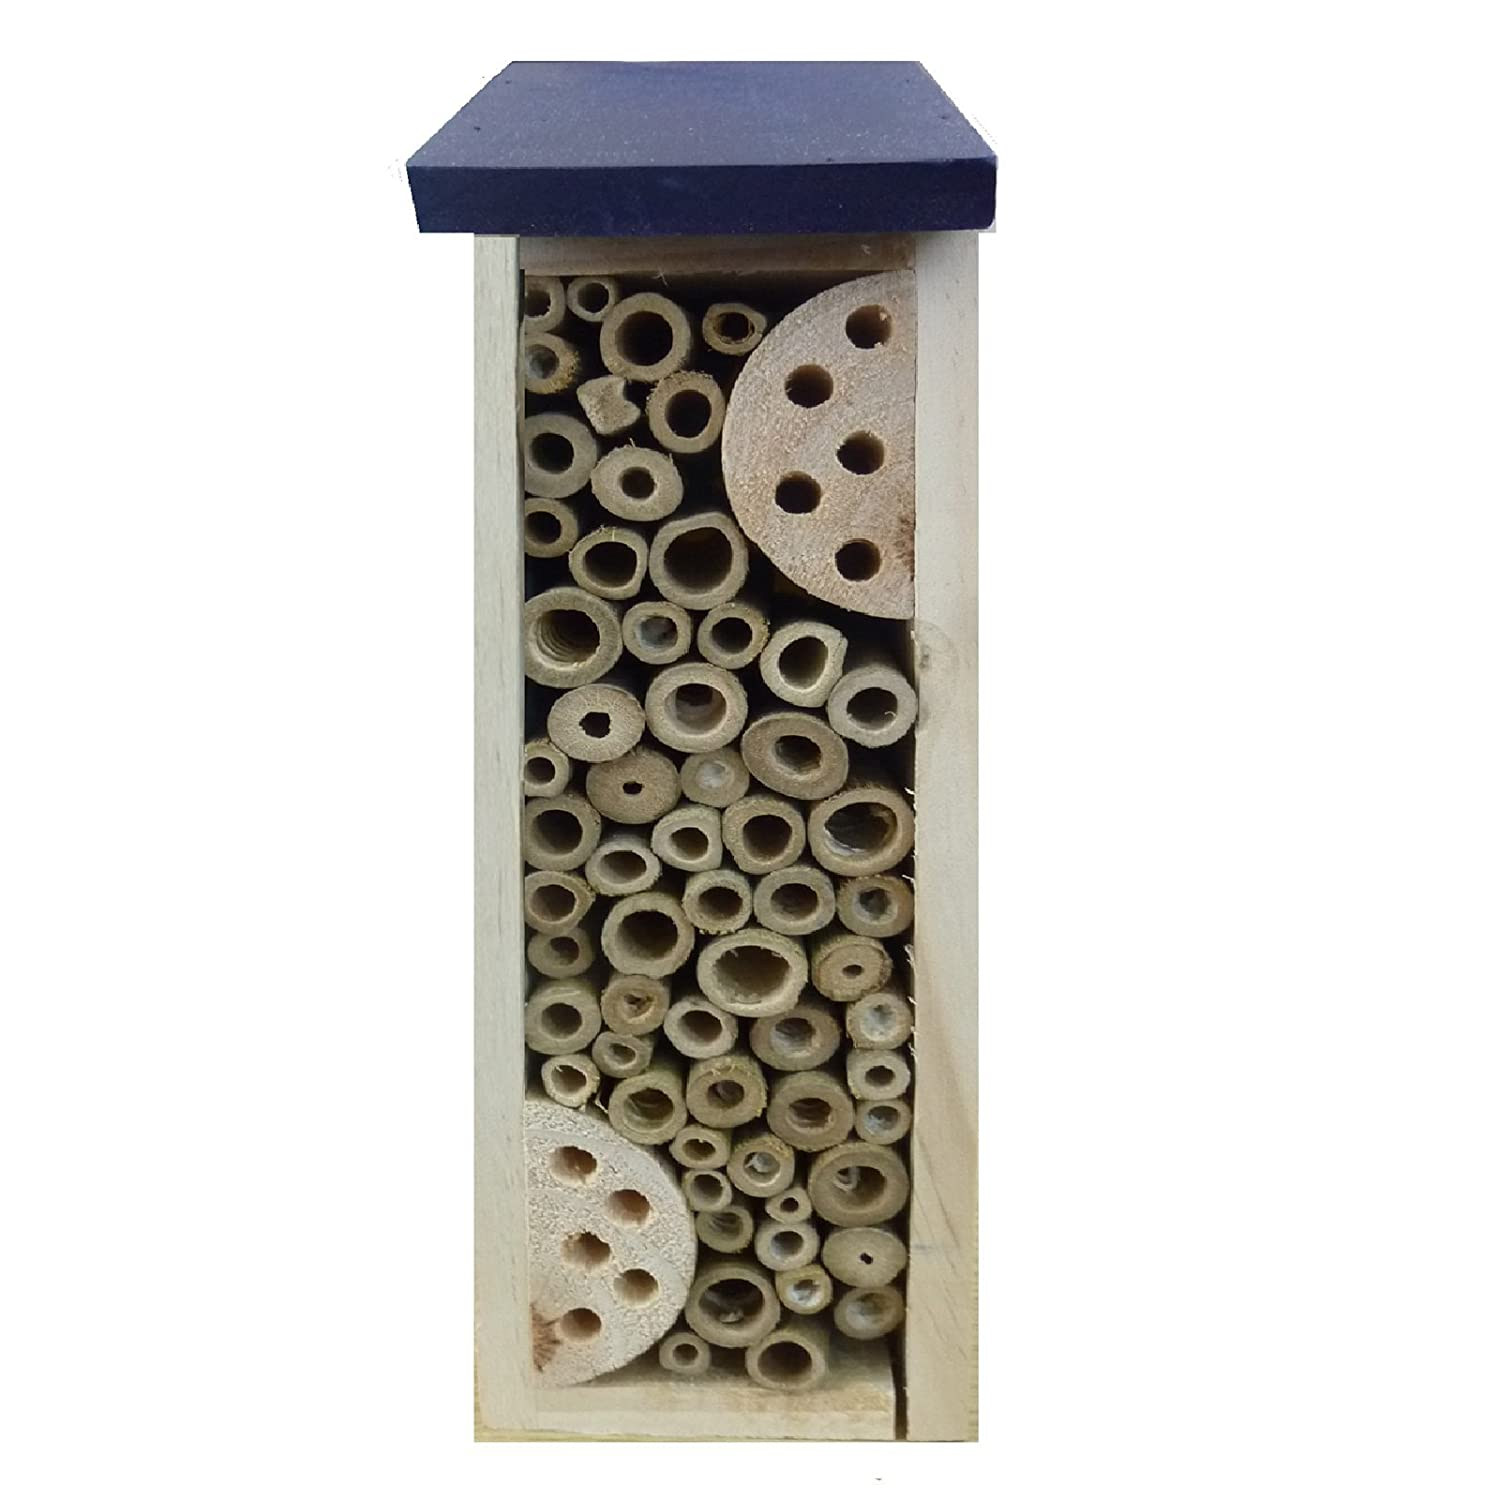 WOODEN BAMBOO INSECT BUGS GARDEN HANGING HOTEL HOME BEES LADYBIRD NEST BOX HOUSE EUROTRADE W LTD